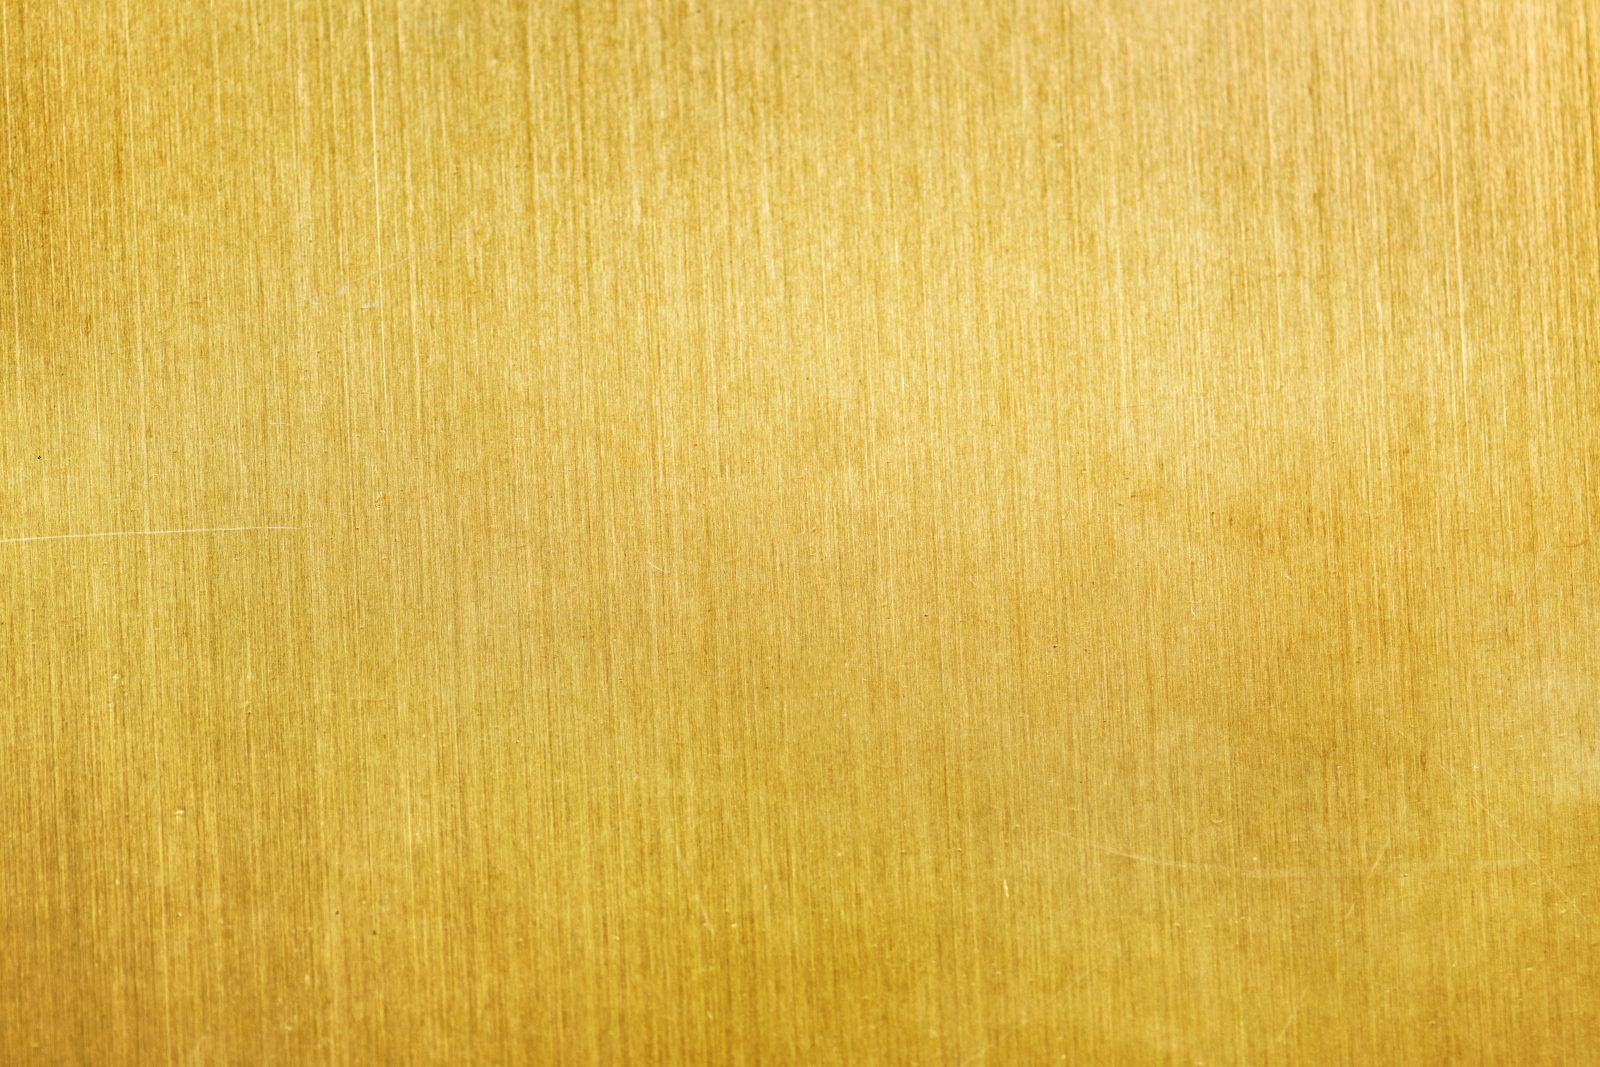 Gold Textured Background - Free Stock Photos